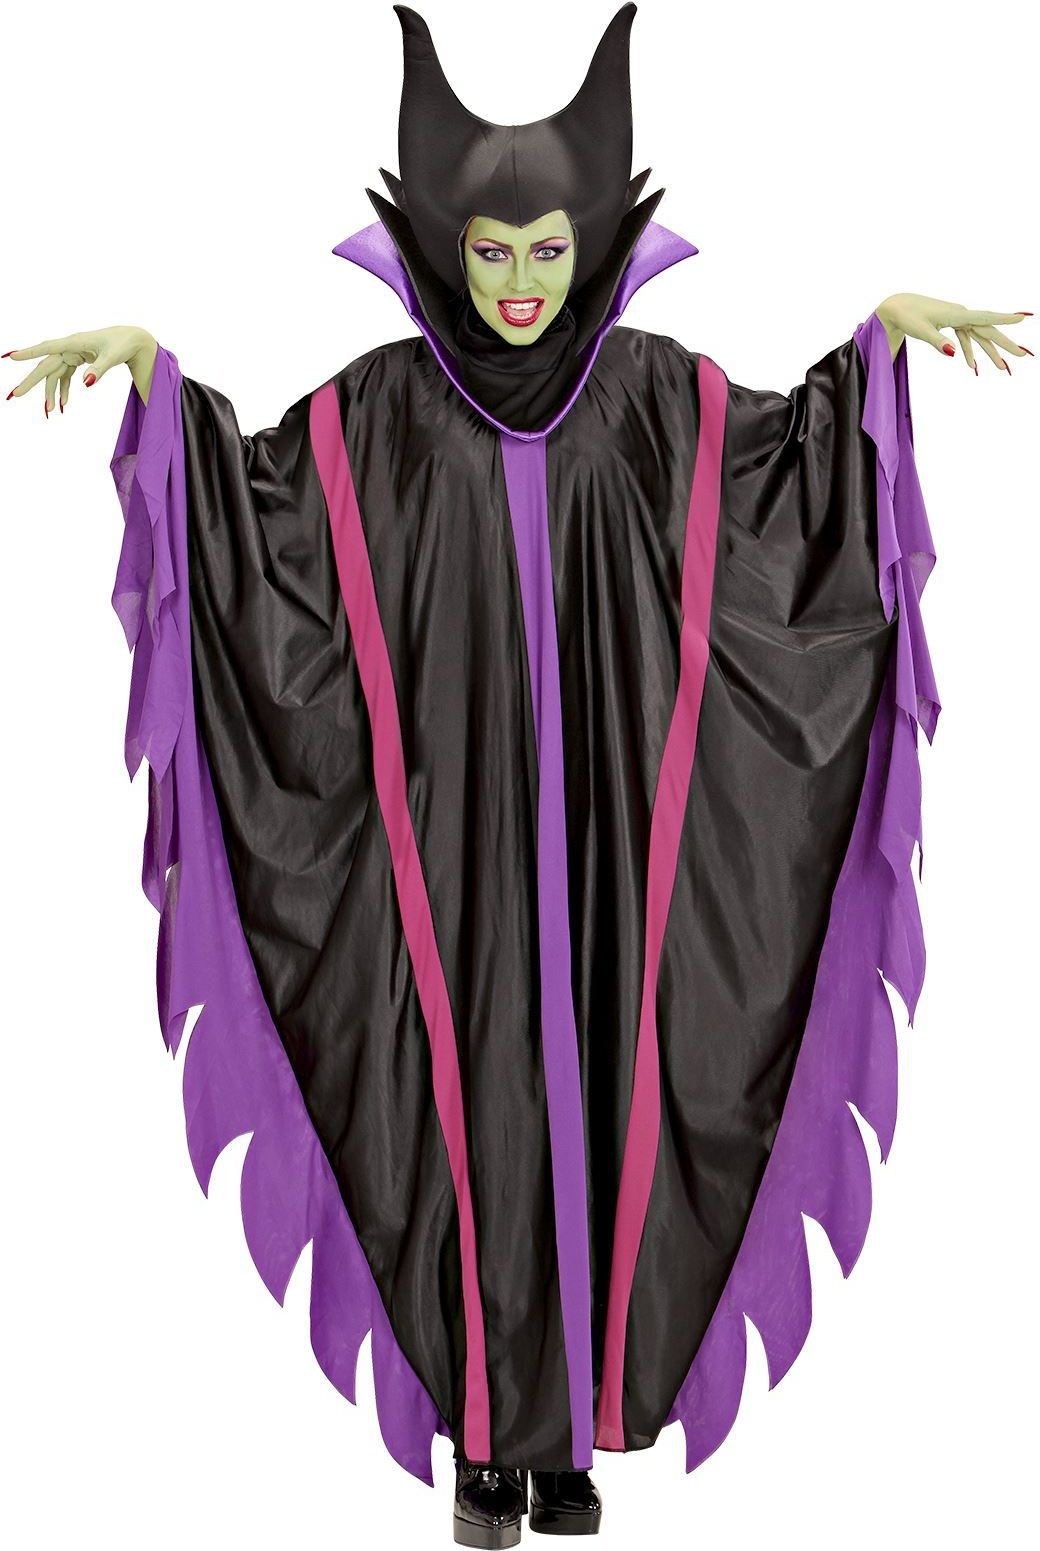 Maleficent jurk dames